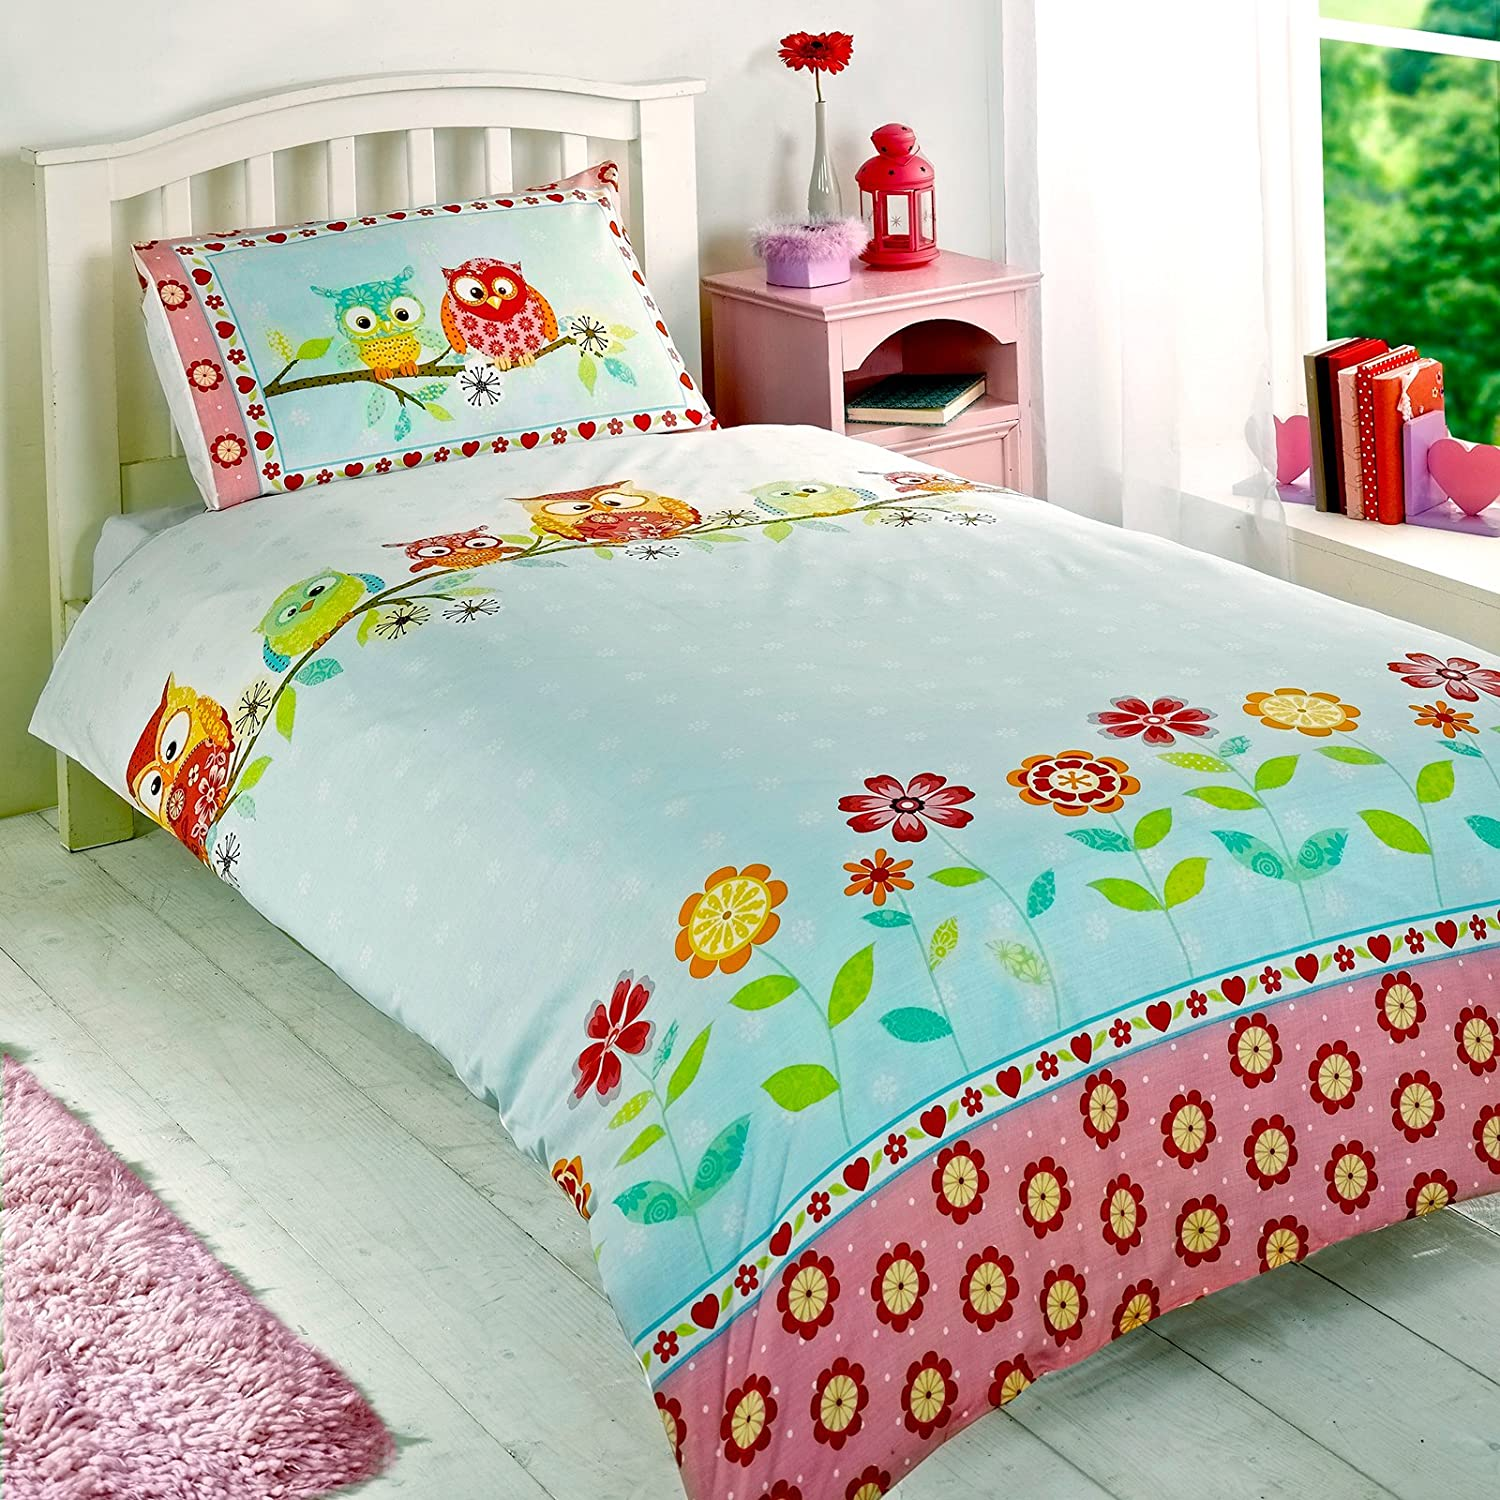 78e96dcd8f Childrens Girls Owls Duvet Cover Quilt Bedding Set, Single (Flowers,  Hearts, Pink, Yellow, Blue): Amazon.co.uk: Kitchen & Home